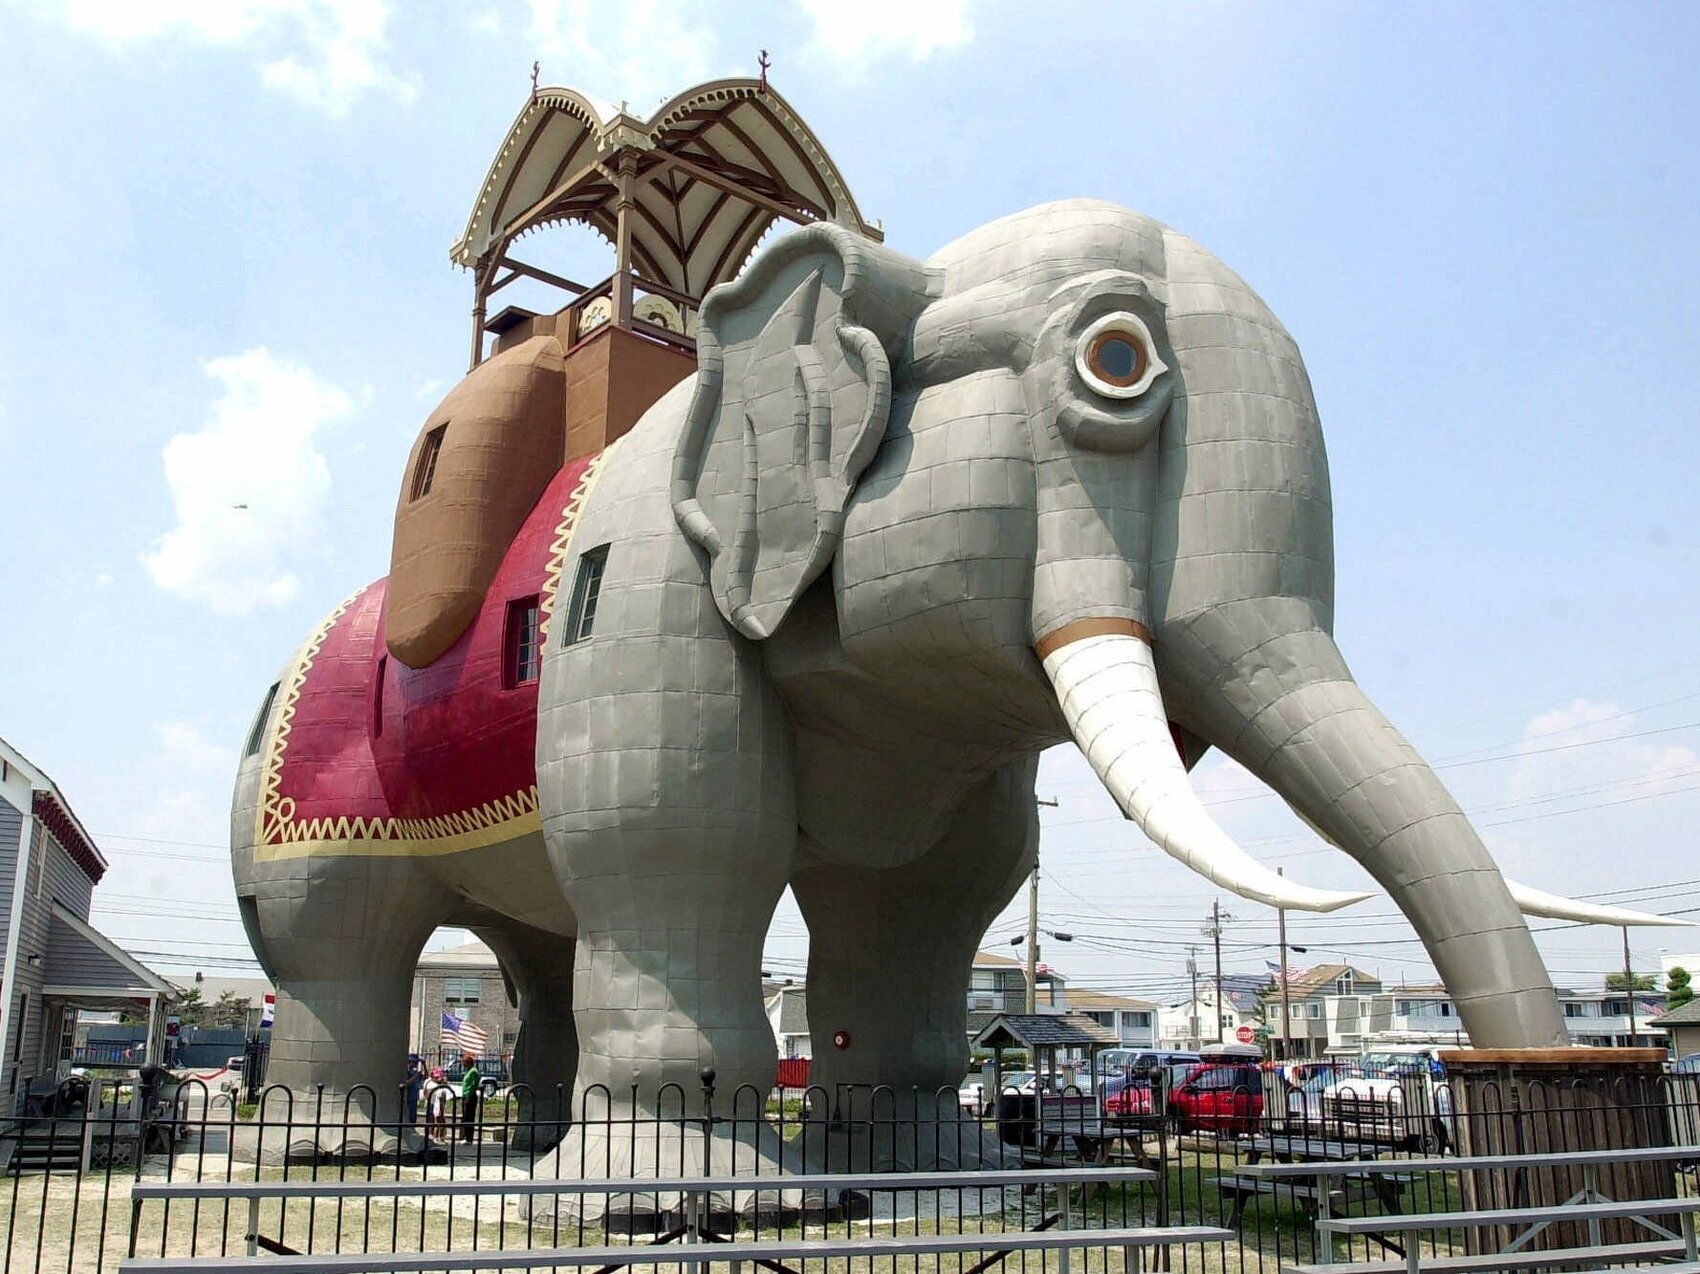 Lucy the Elephant has weathered a few storms in her home on the New Jersey shore. Many believe she is the oldest roadside attraction in America.